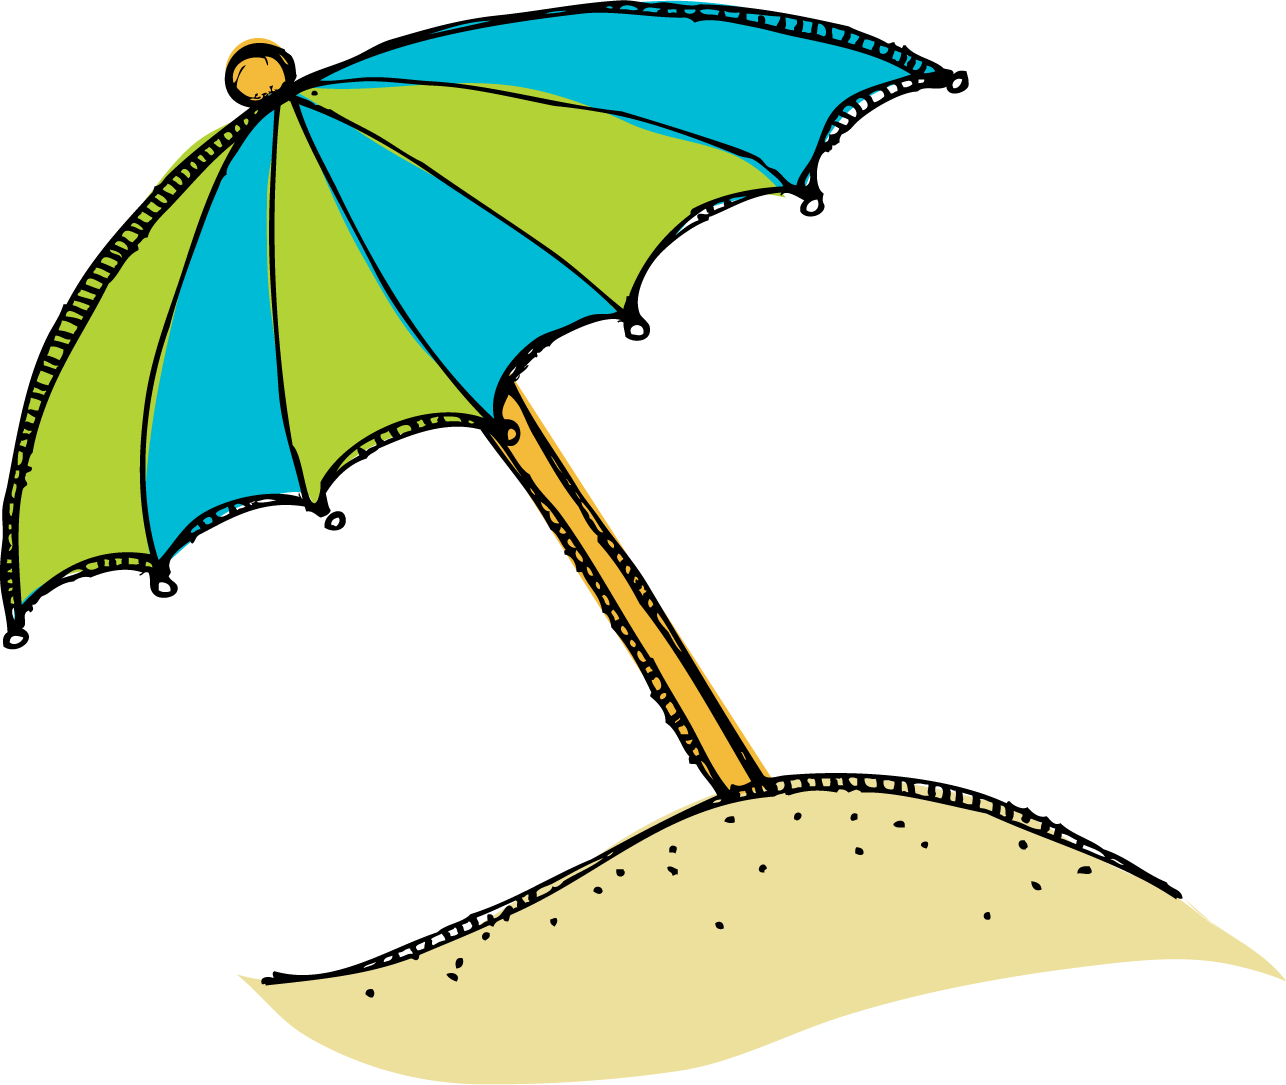 Umbrella clipart clip art. Summer beach bay